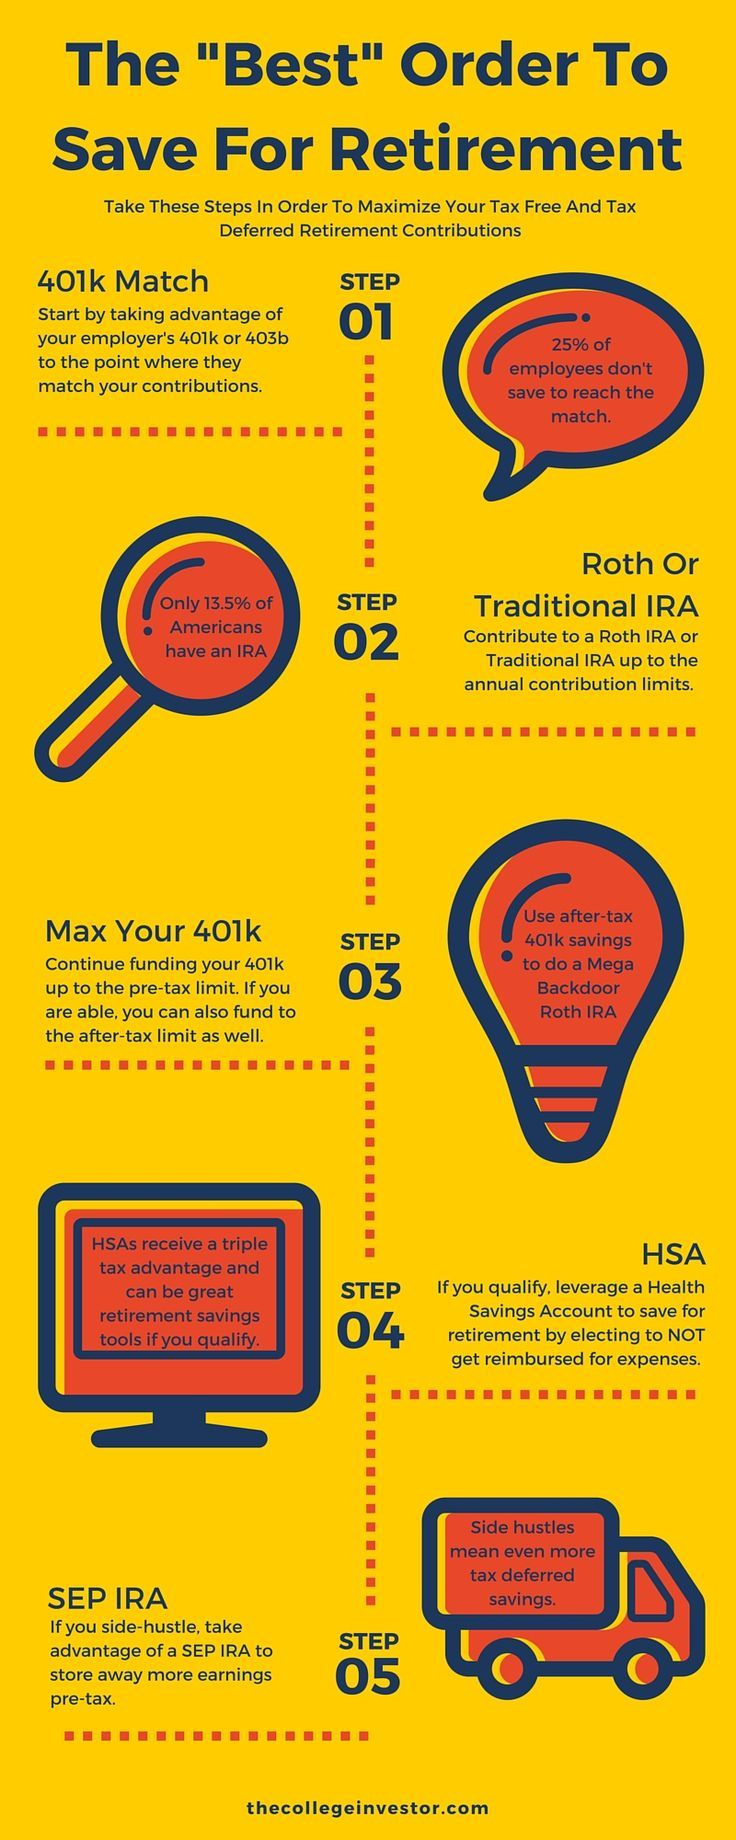 The Best Order Of Operations To Save For Retirement Using Tax Deferred Accounts Like A 401k, IRA, and HSA.